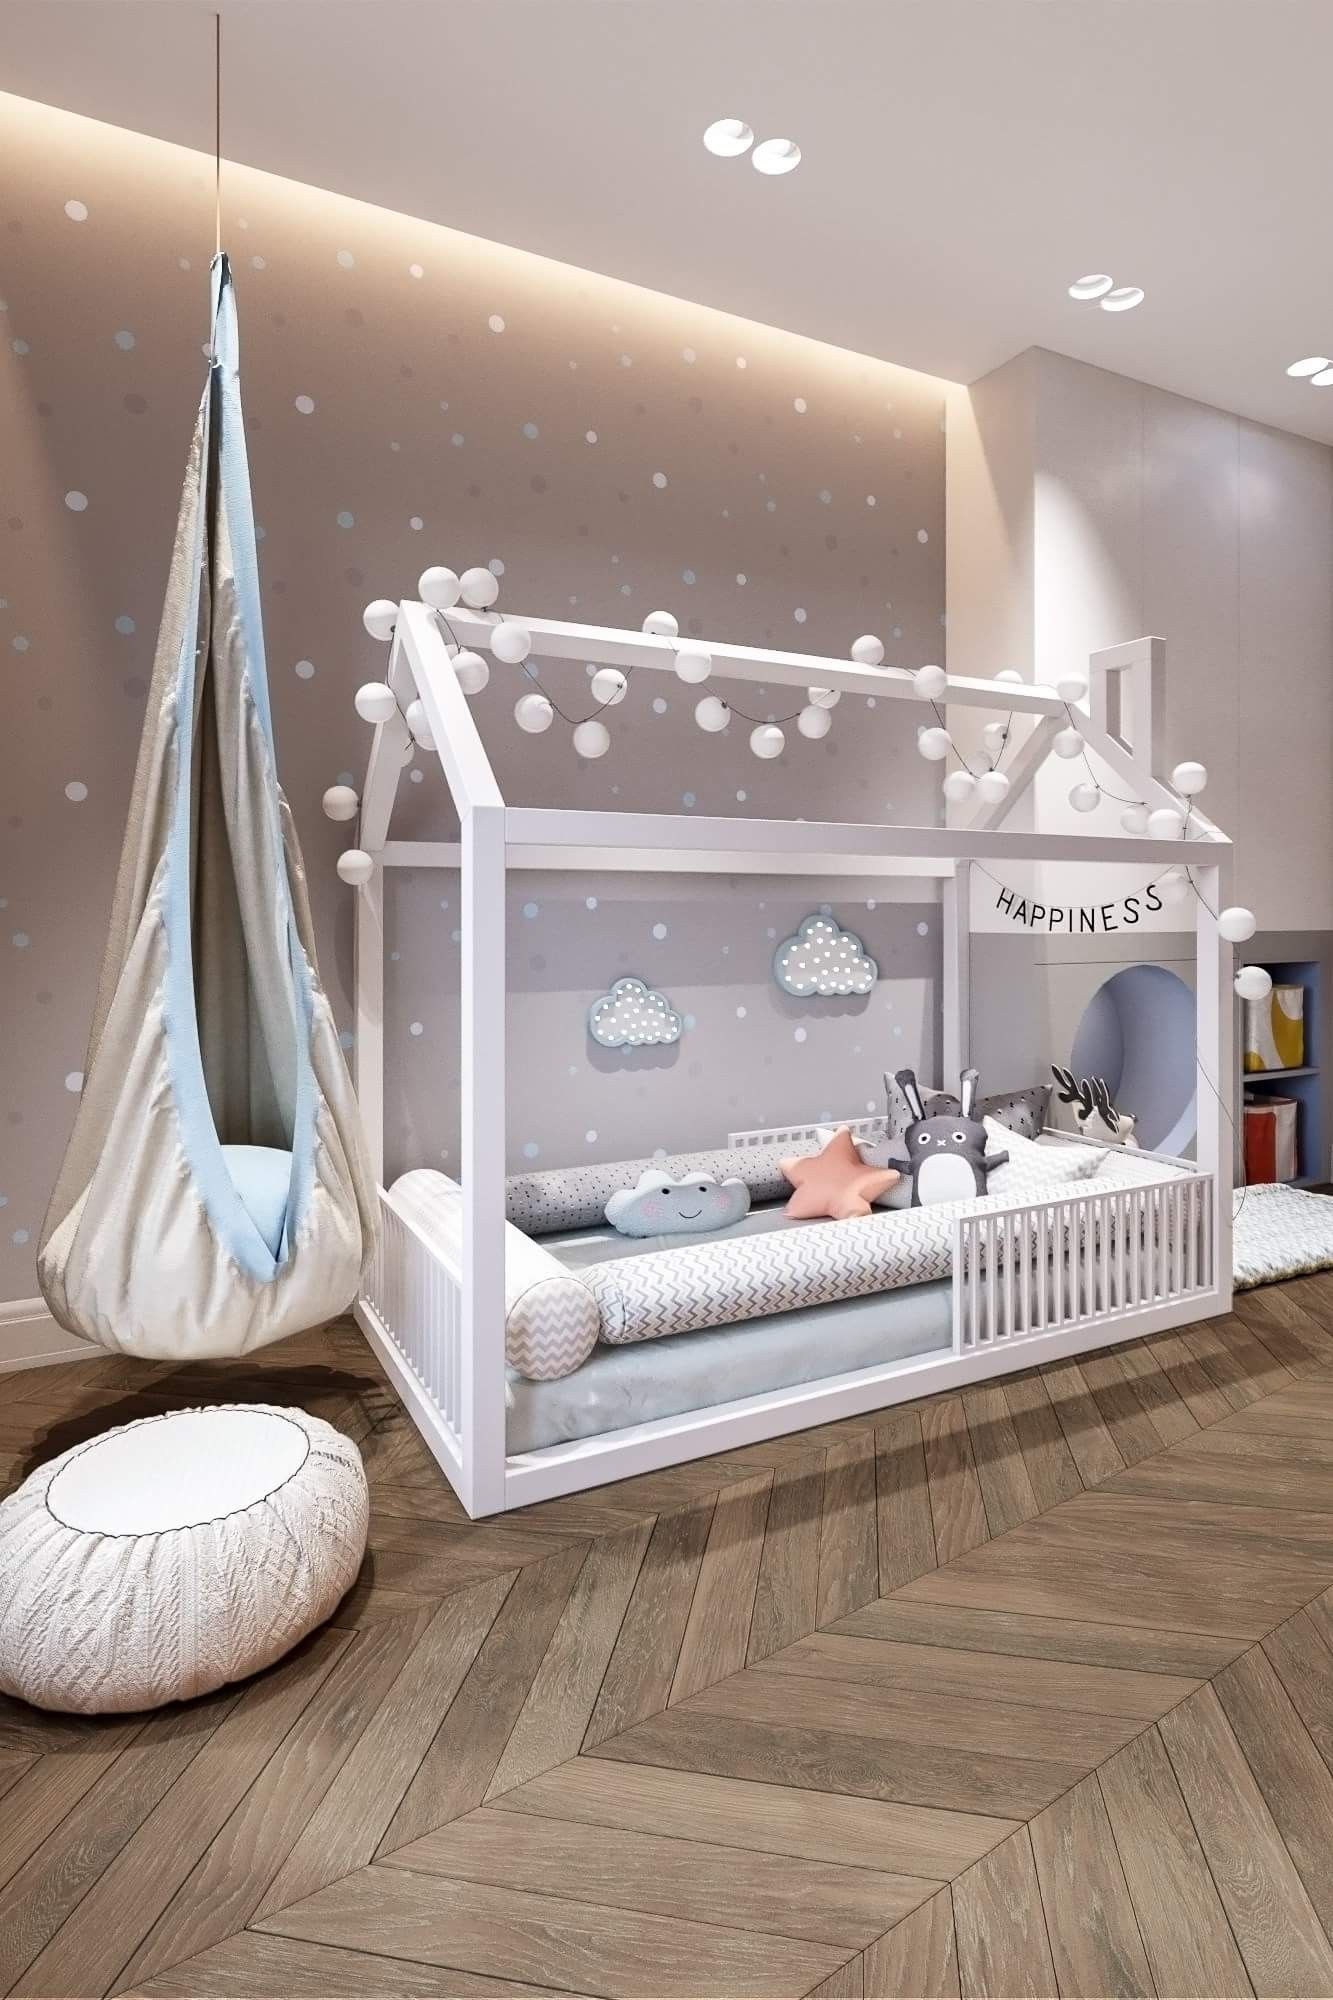 Pin by héloïse wehnert on enfant pinterest room kids rooms and